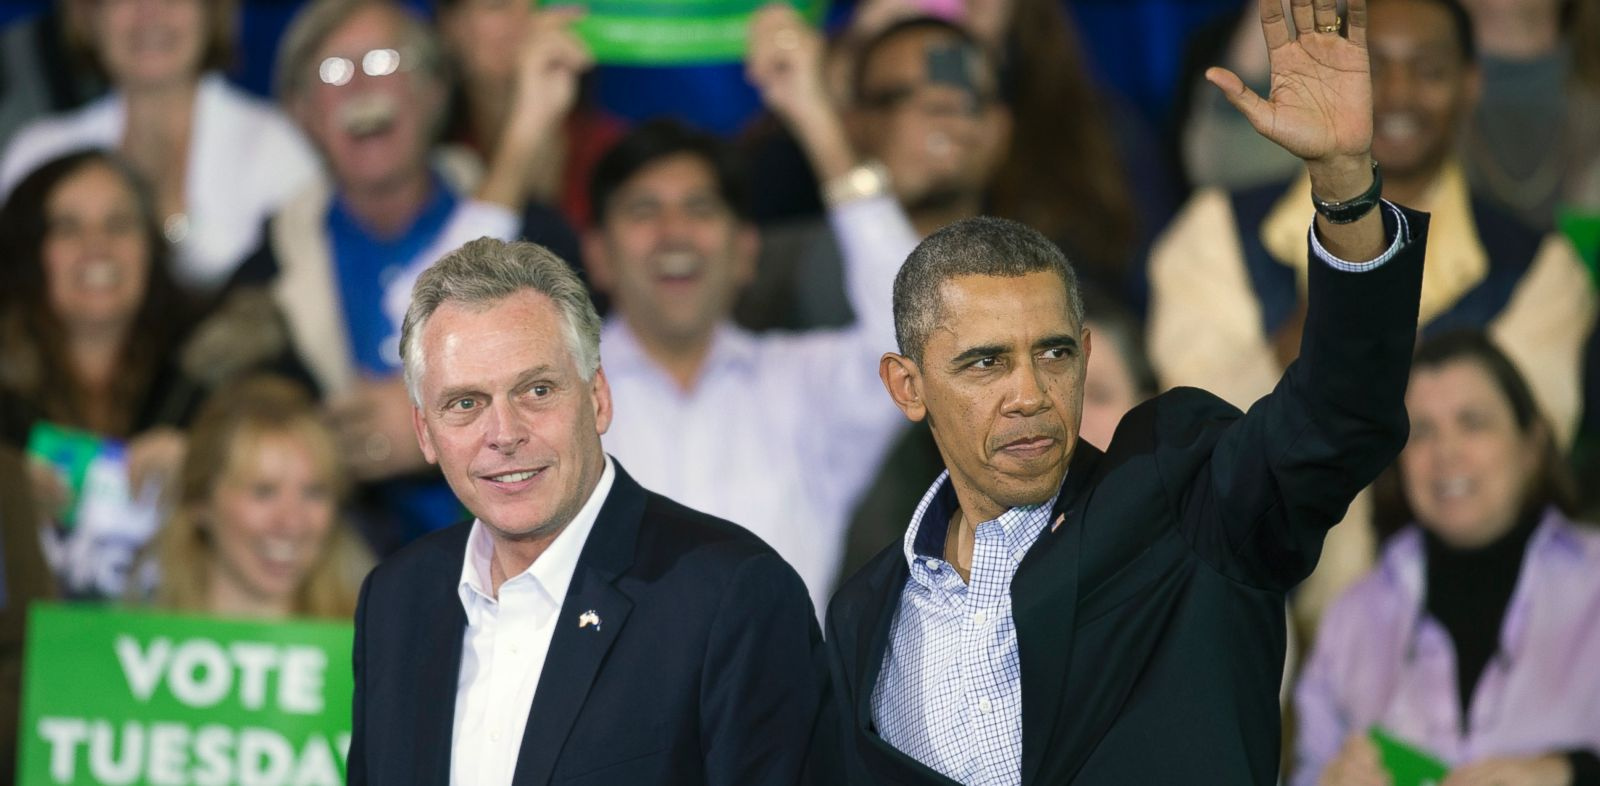 PHOTO: President Barack Obama appears at a campaign rally with supporters for Virginia Democratic gubernatorial candidate Terry McAuliffe, left, at Washington Lee High School in Arlington, Va., Sunday, Nov. 3, 2013.